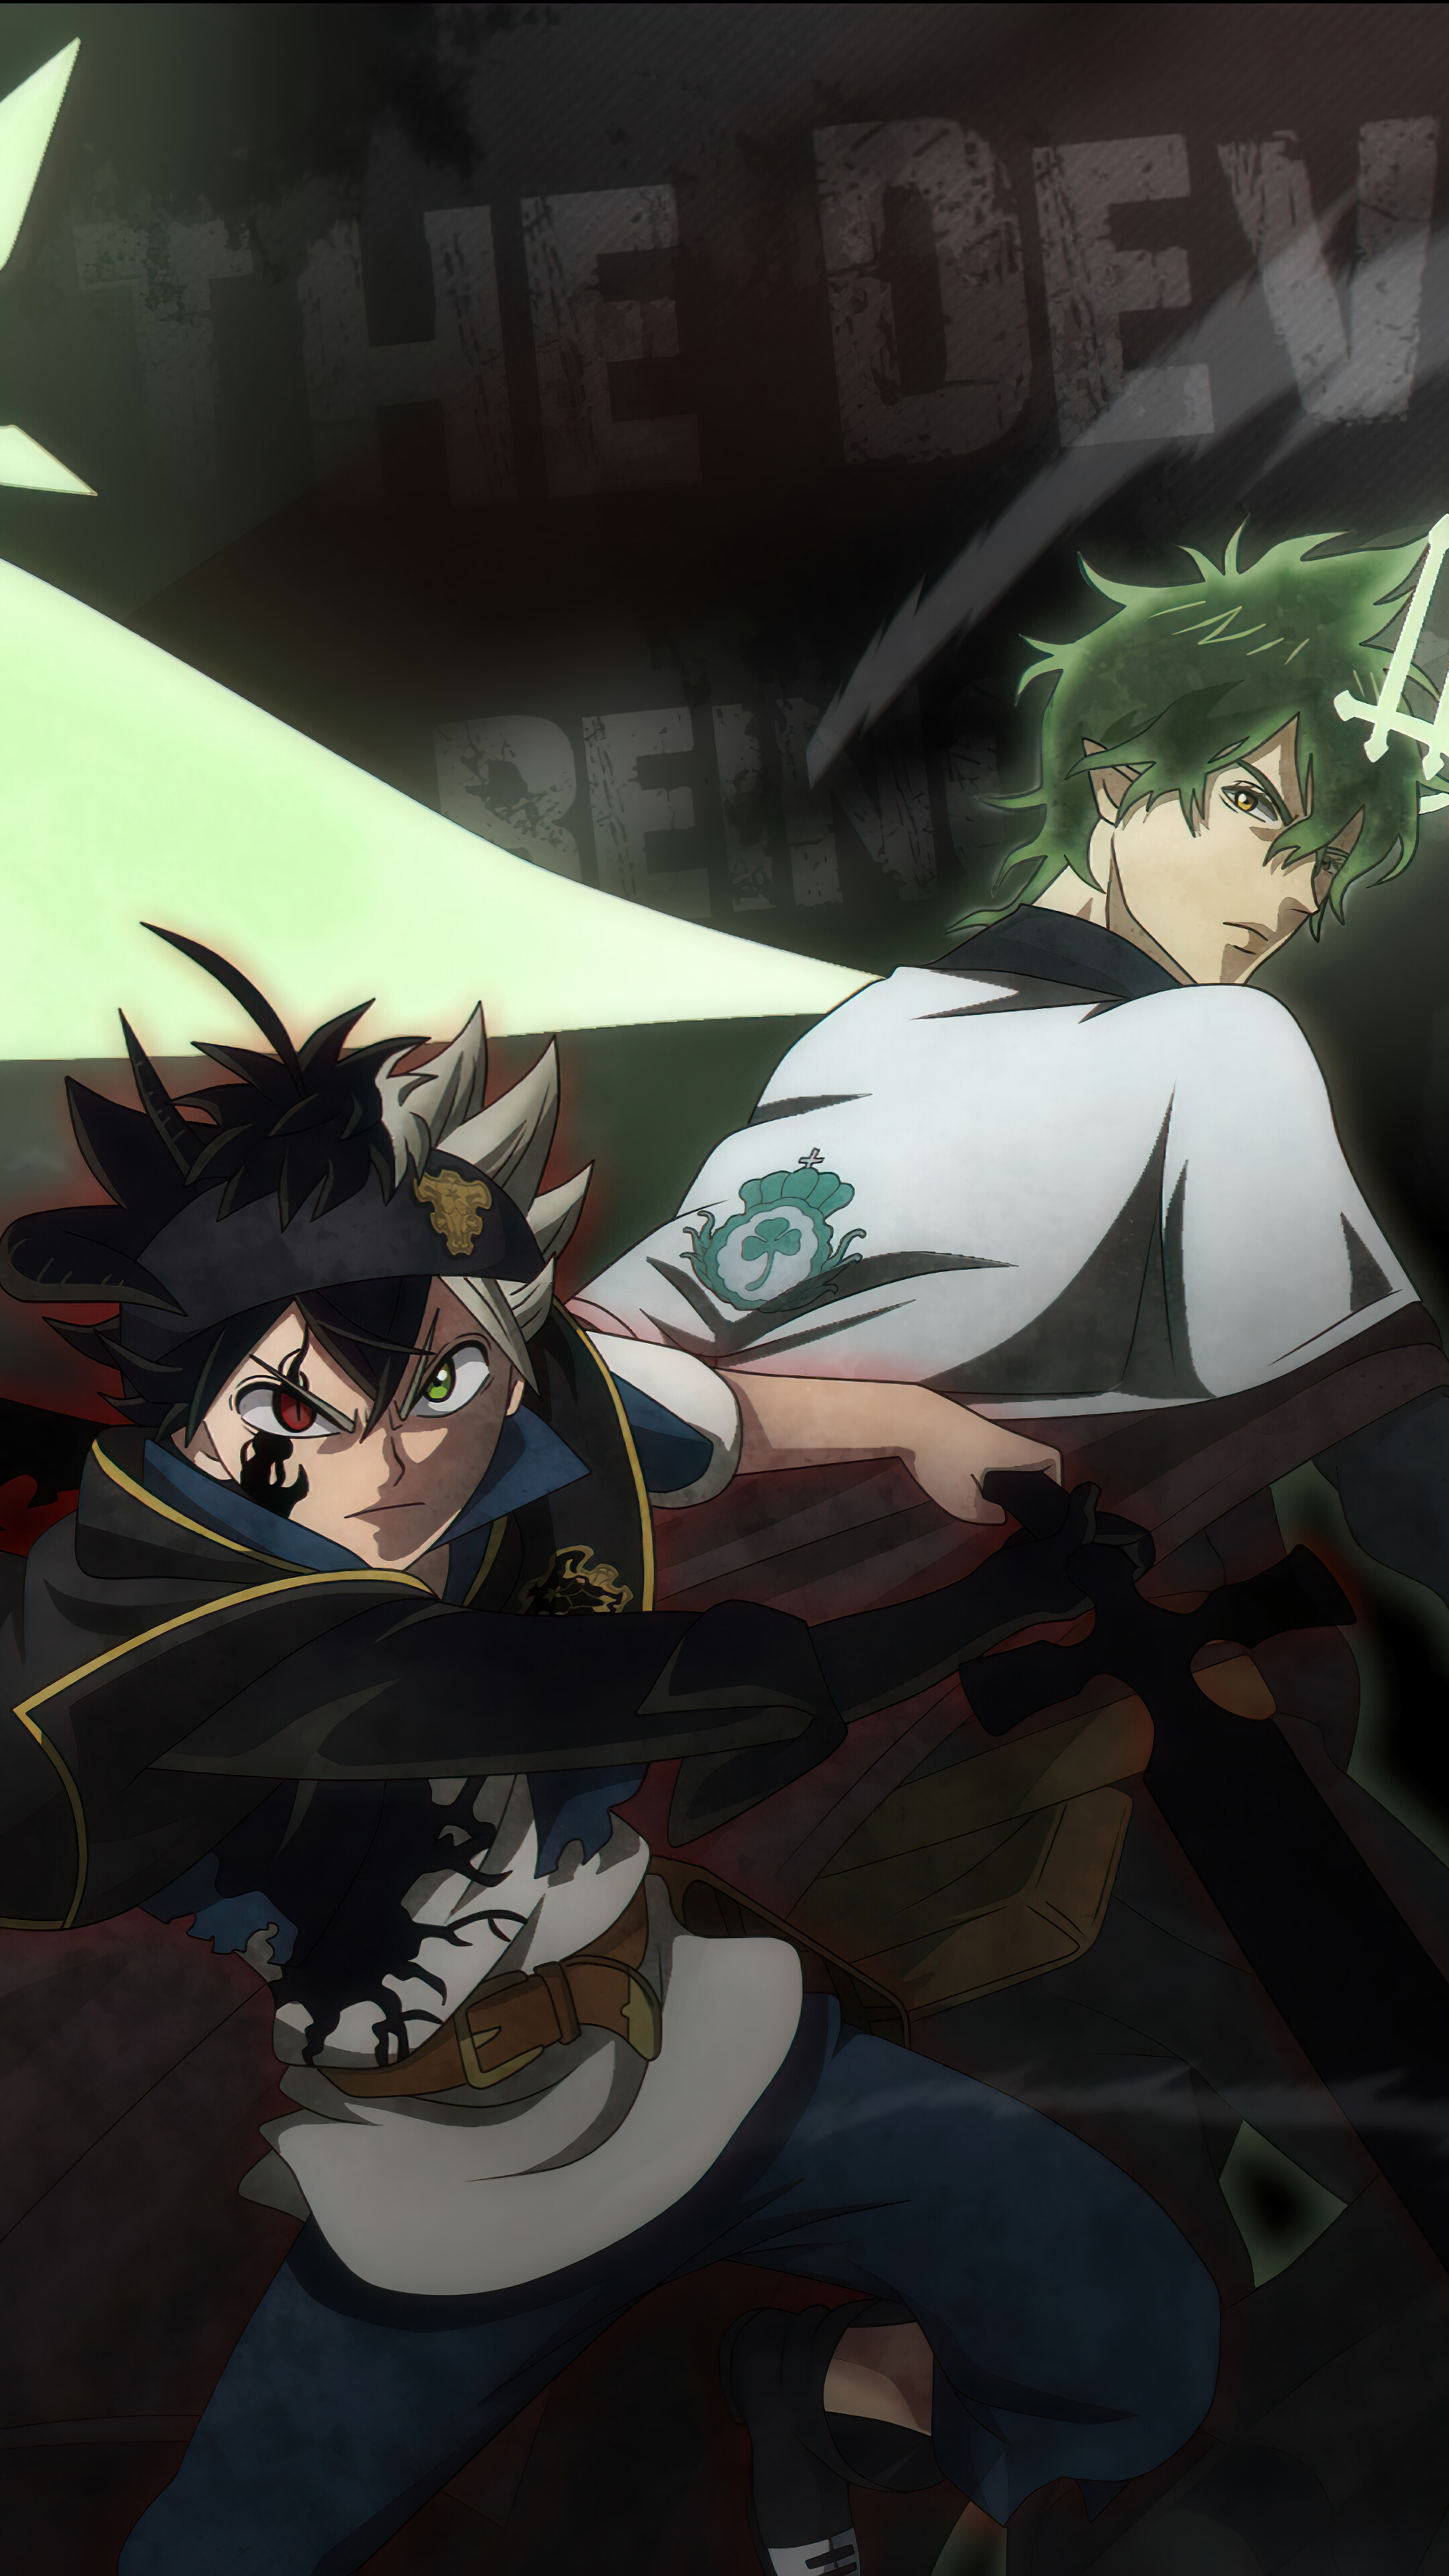 Demon slayers, blue and red. Black Clover Wallpaper Hd Asta And Yuno - Gambar Ngetrend ...